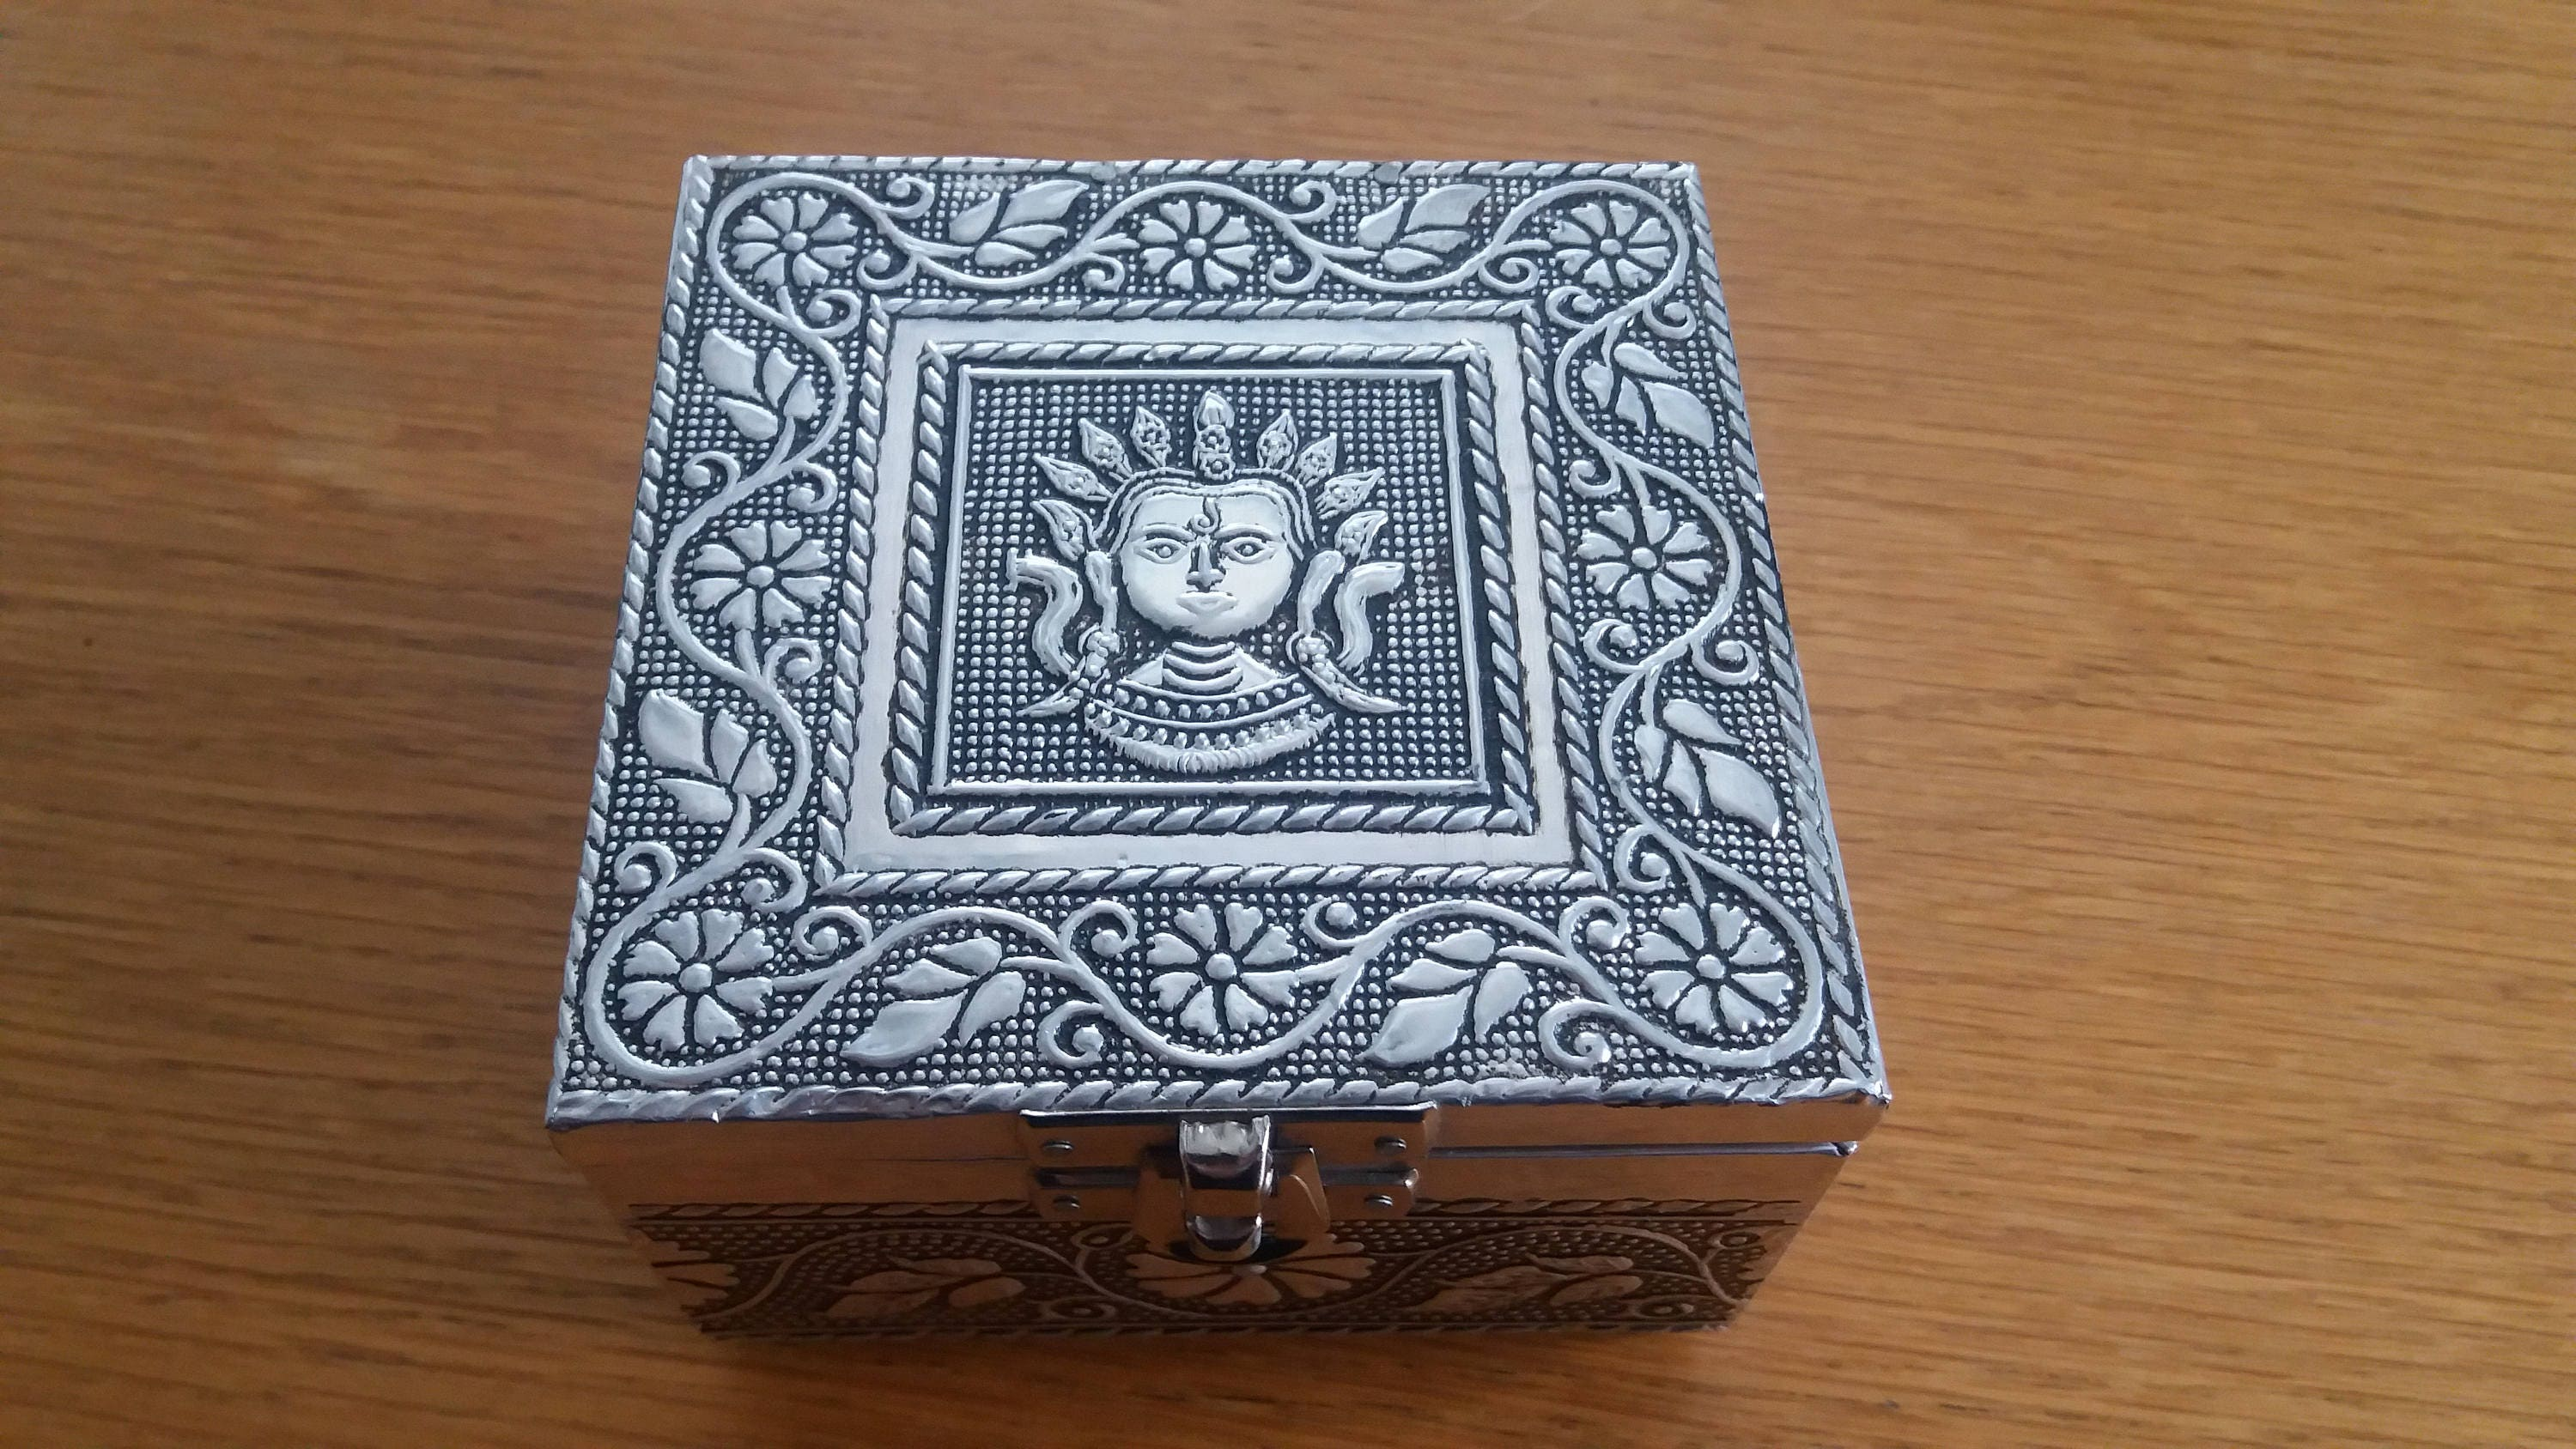 Vintage Silvertone Thai Aztec Inspired Jewellery Box  Kitsch Chic Boho  South American Infused Style